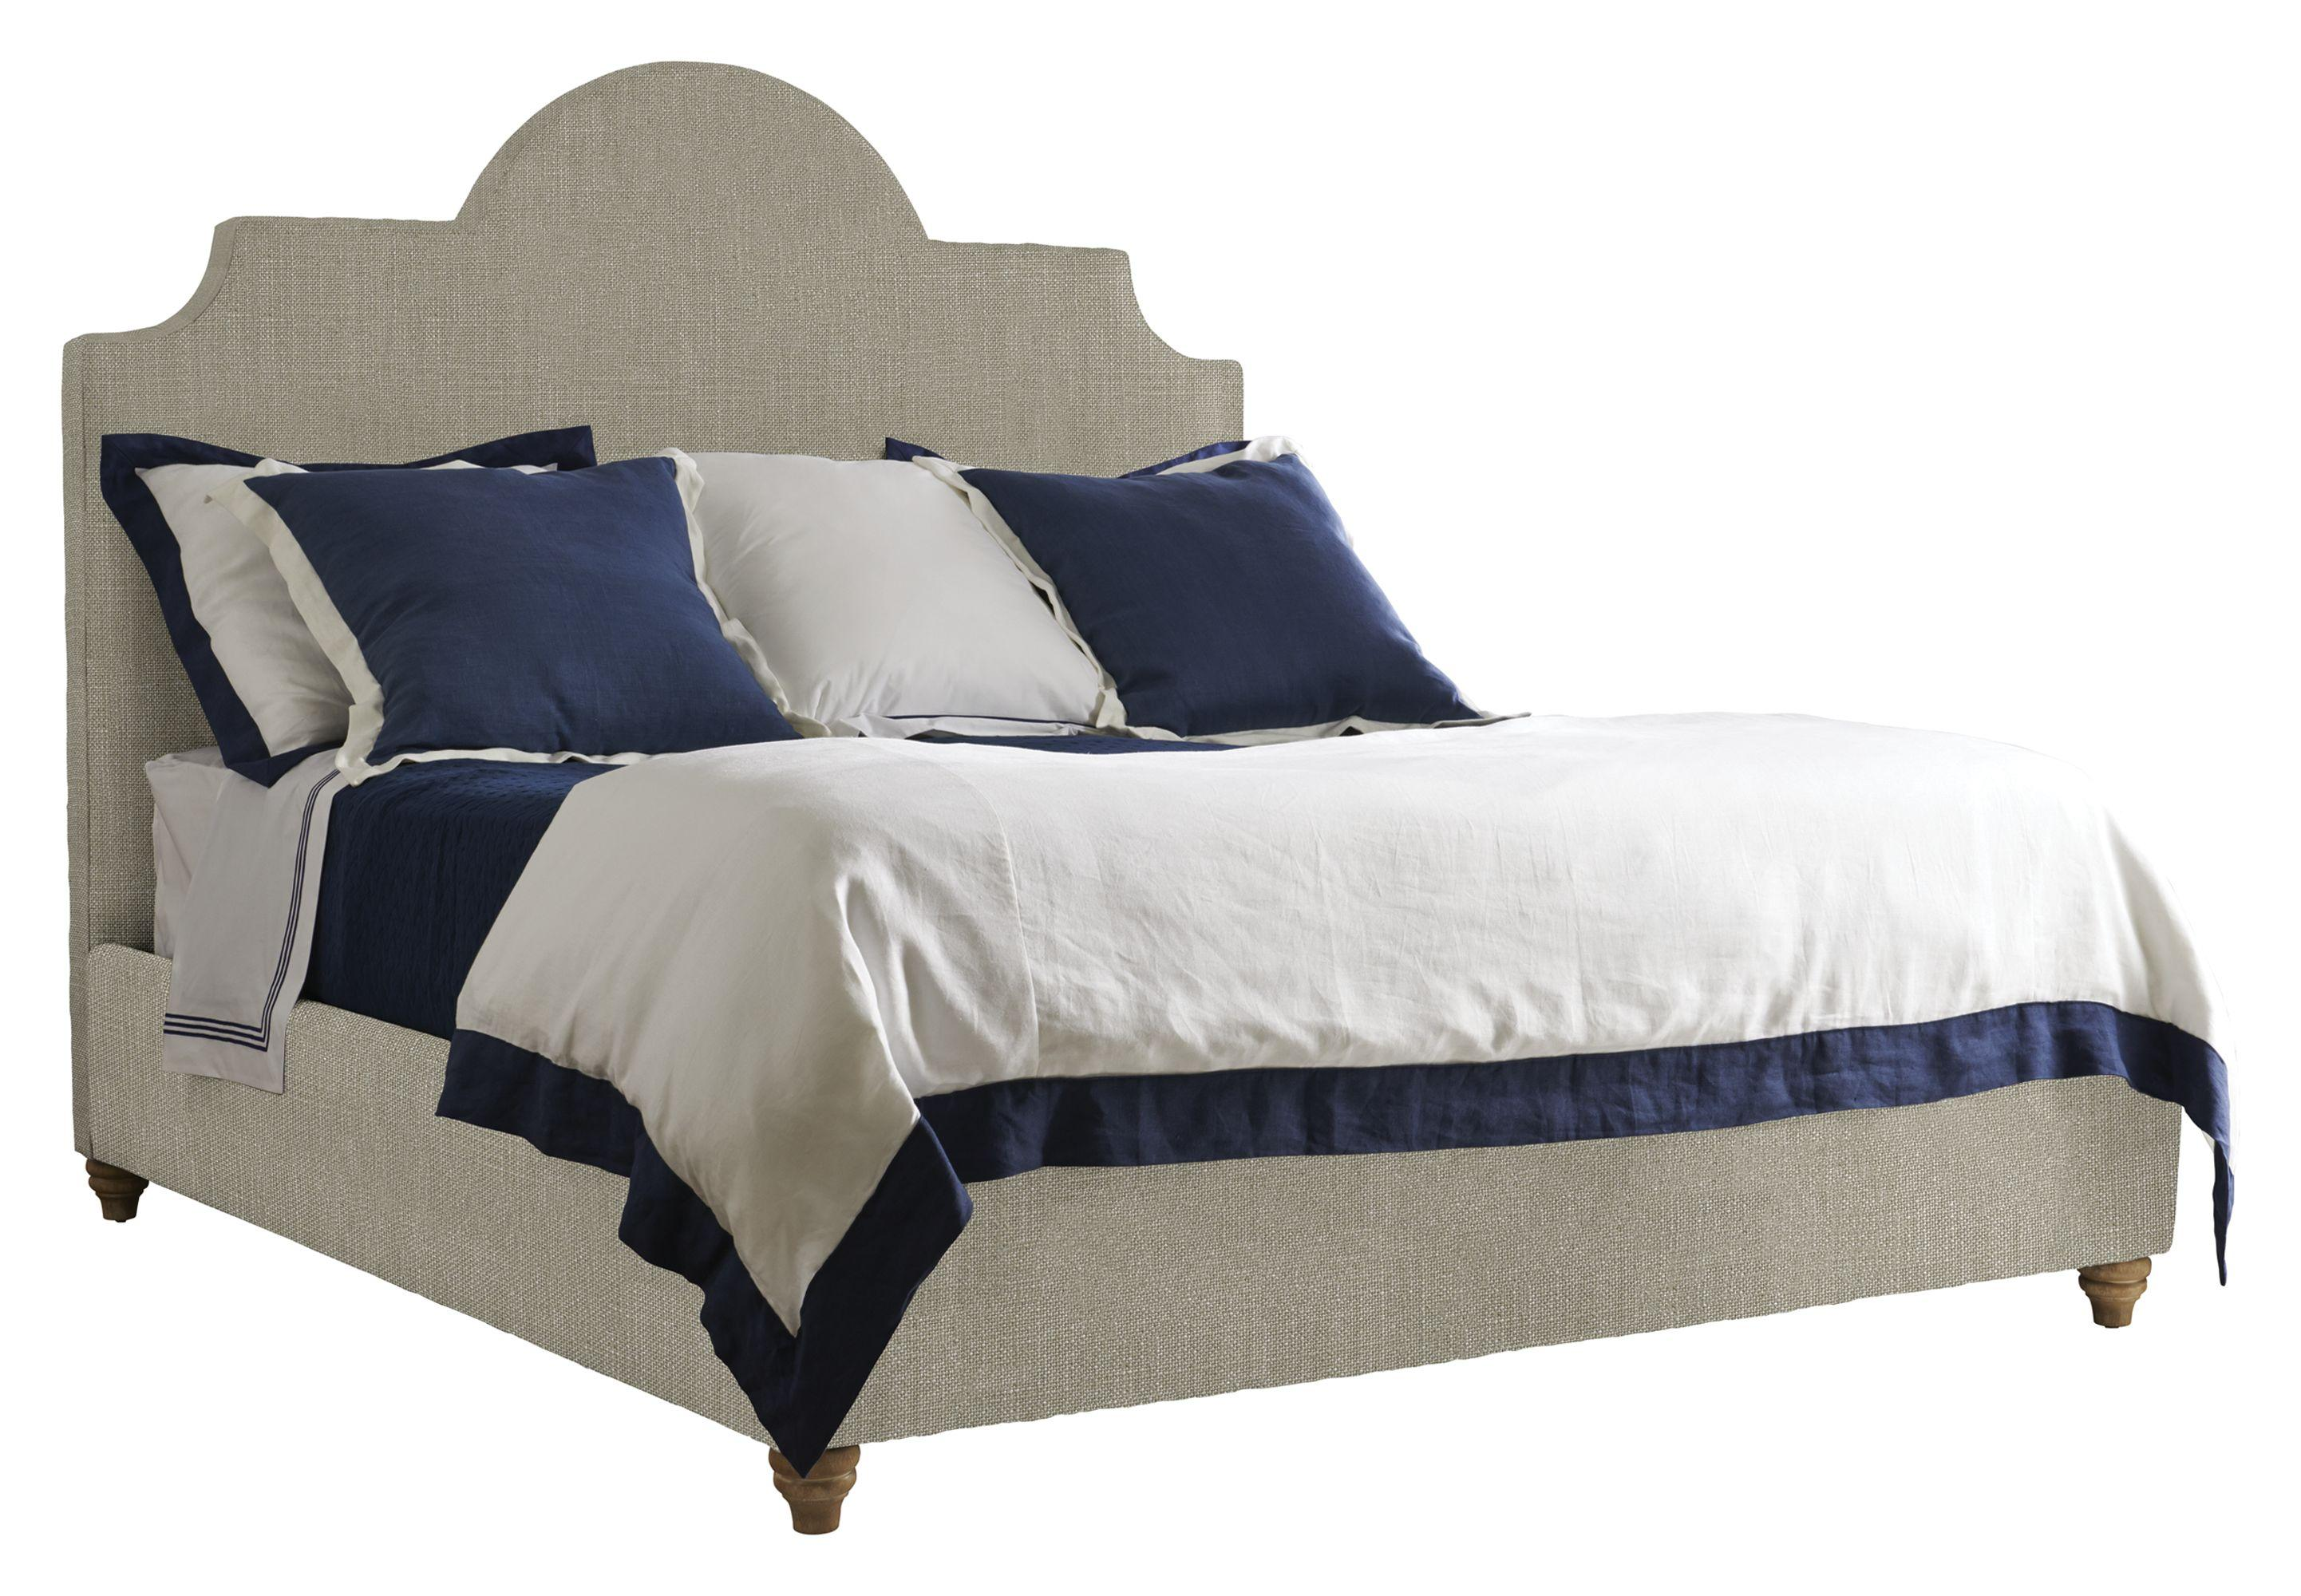 Stanley Furniture Coastal Living Retreat California King Breach Inlet Bed - Item Number: 411-B3-54